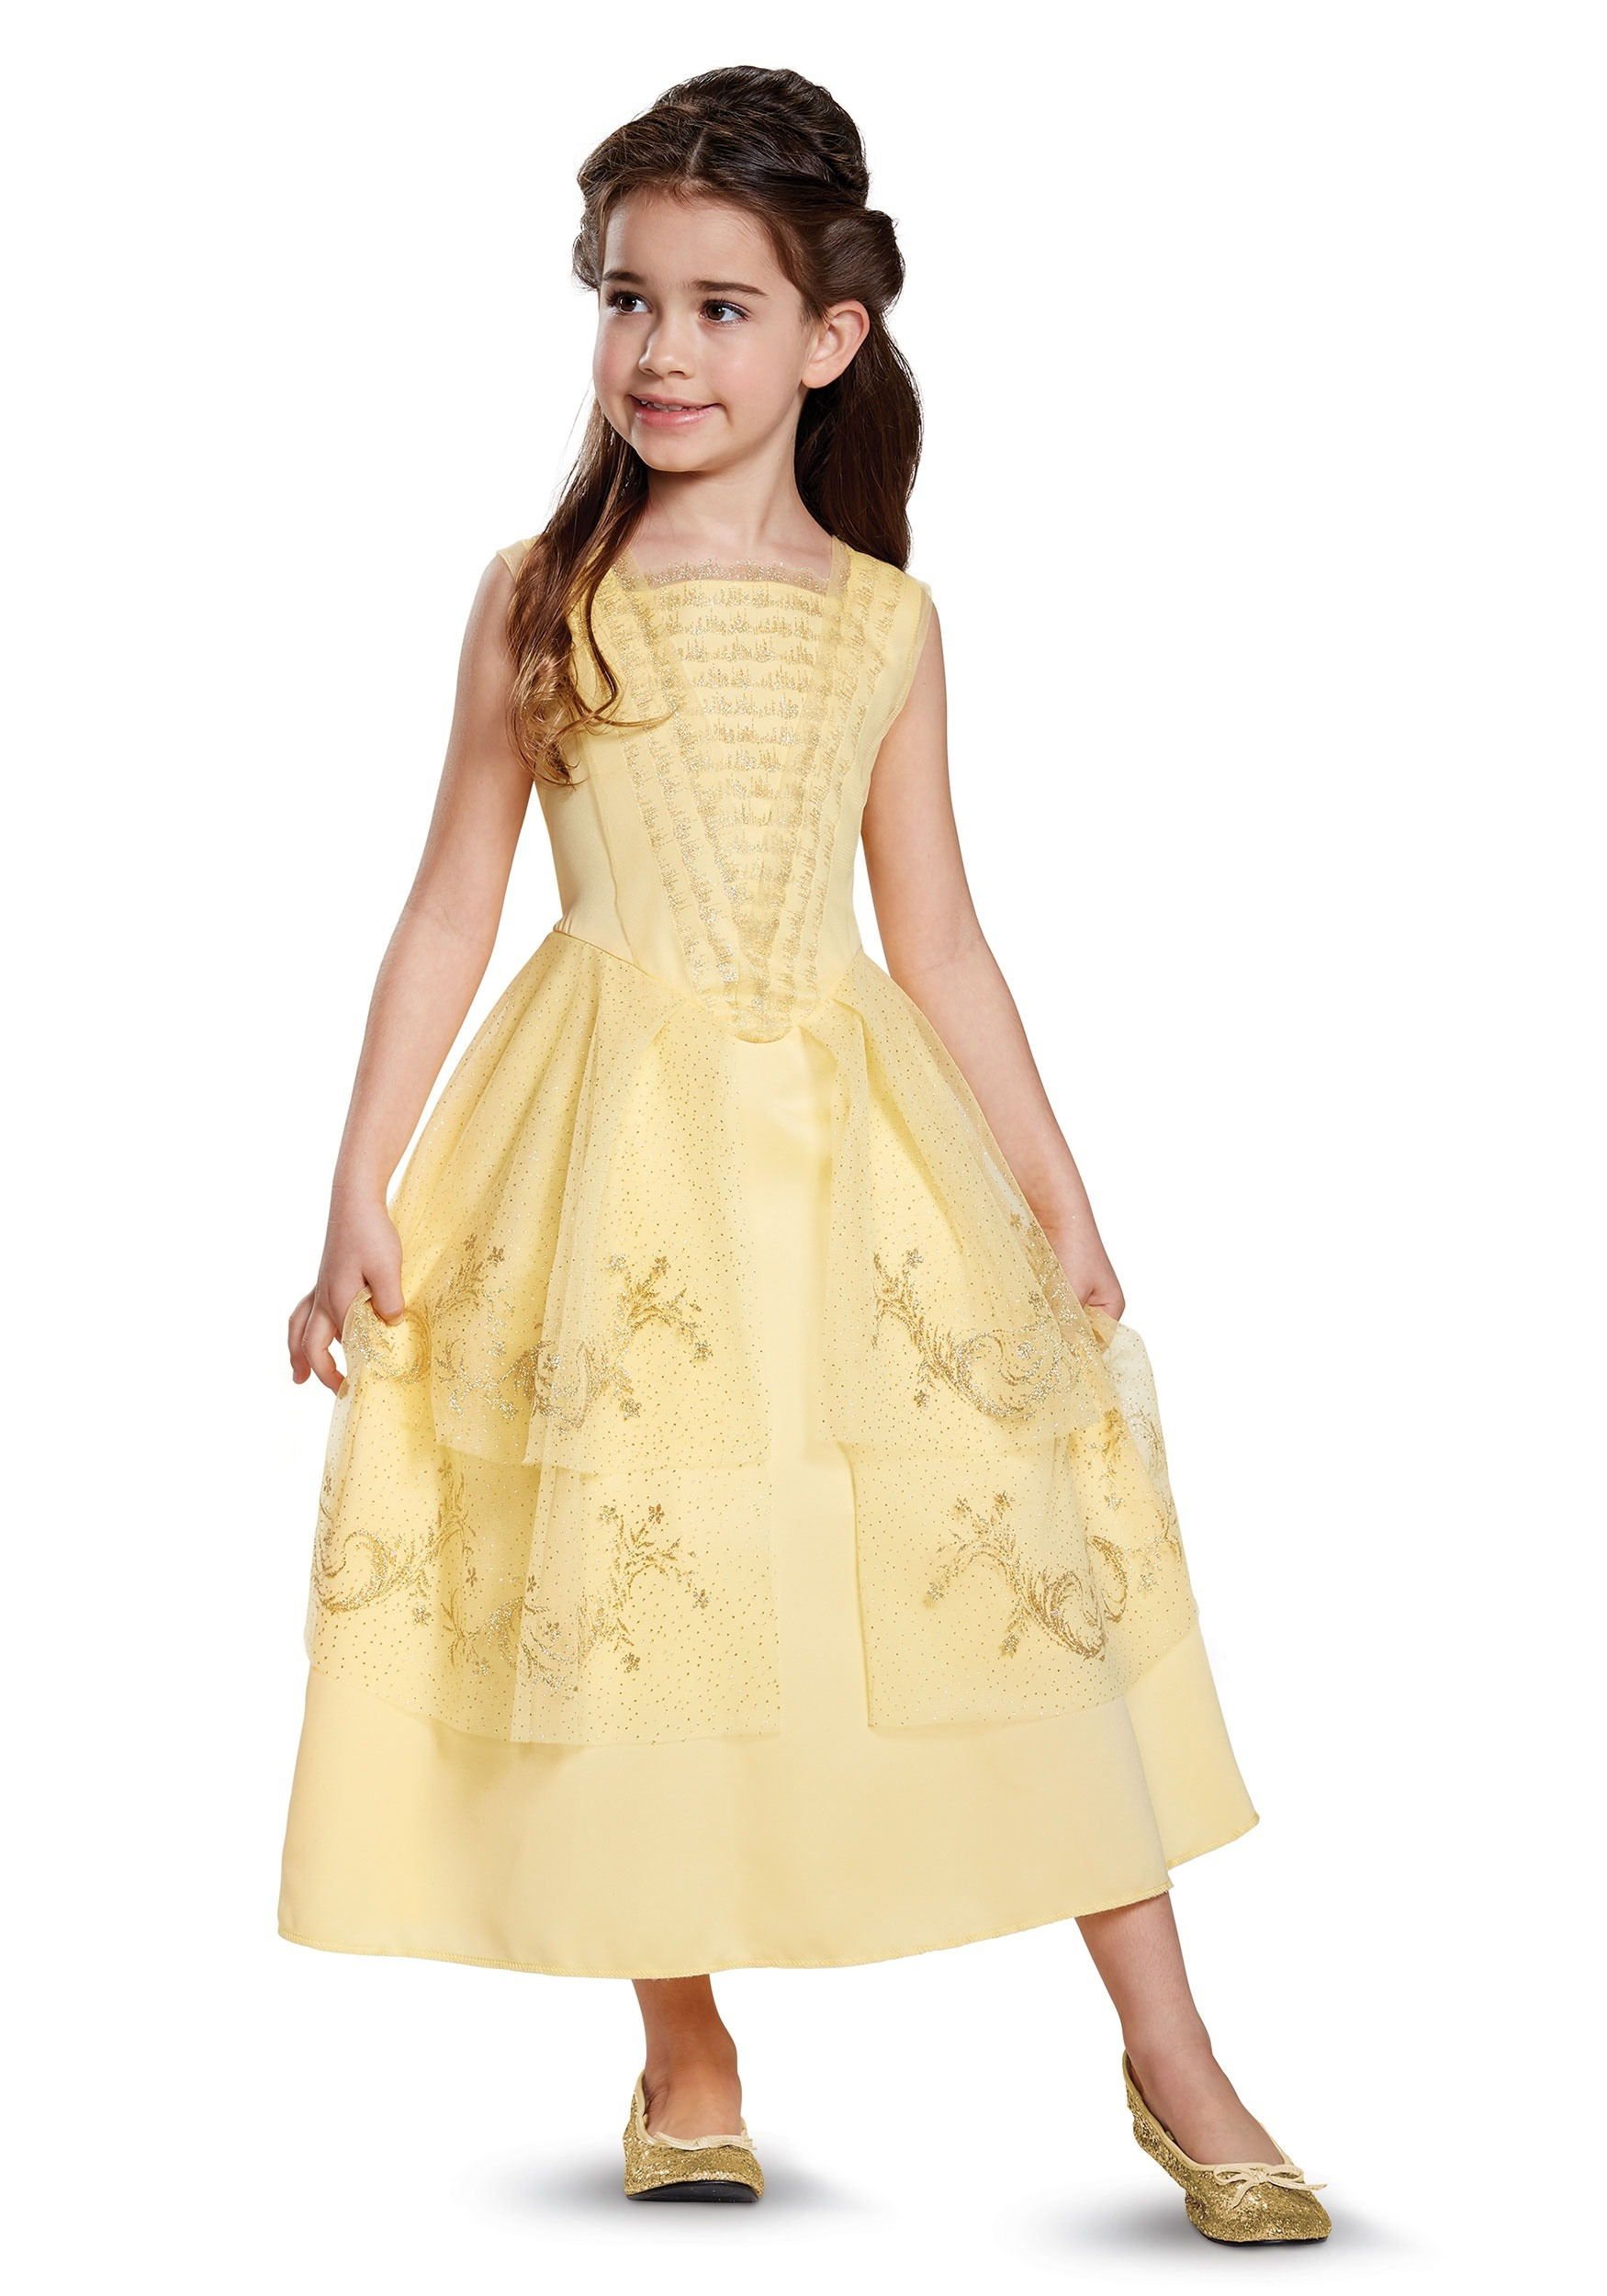 Belle Ball Gown Classic Girl\'s Costume